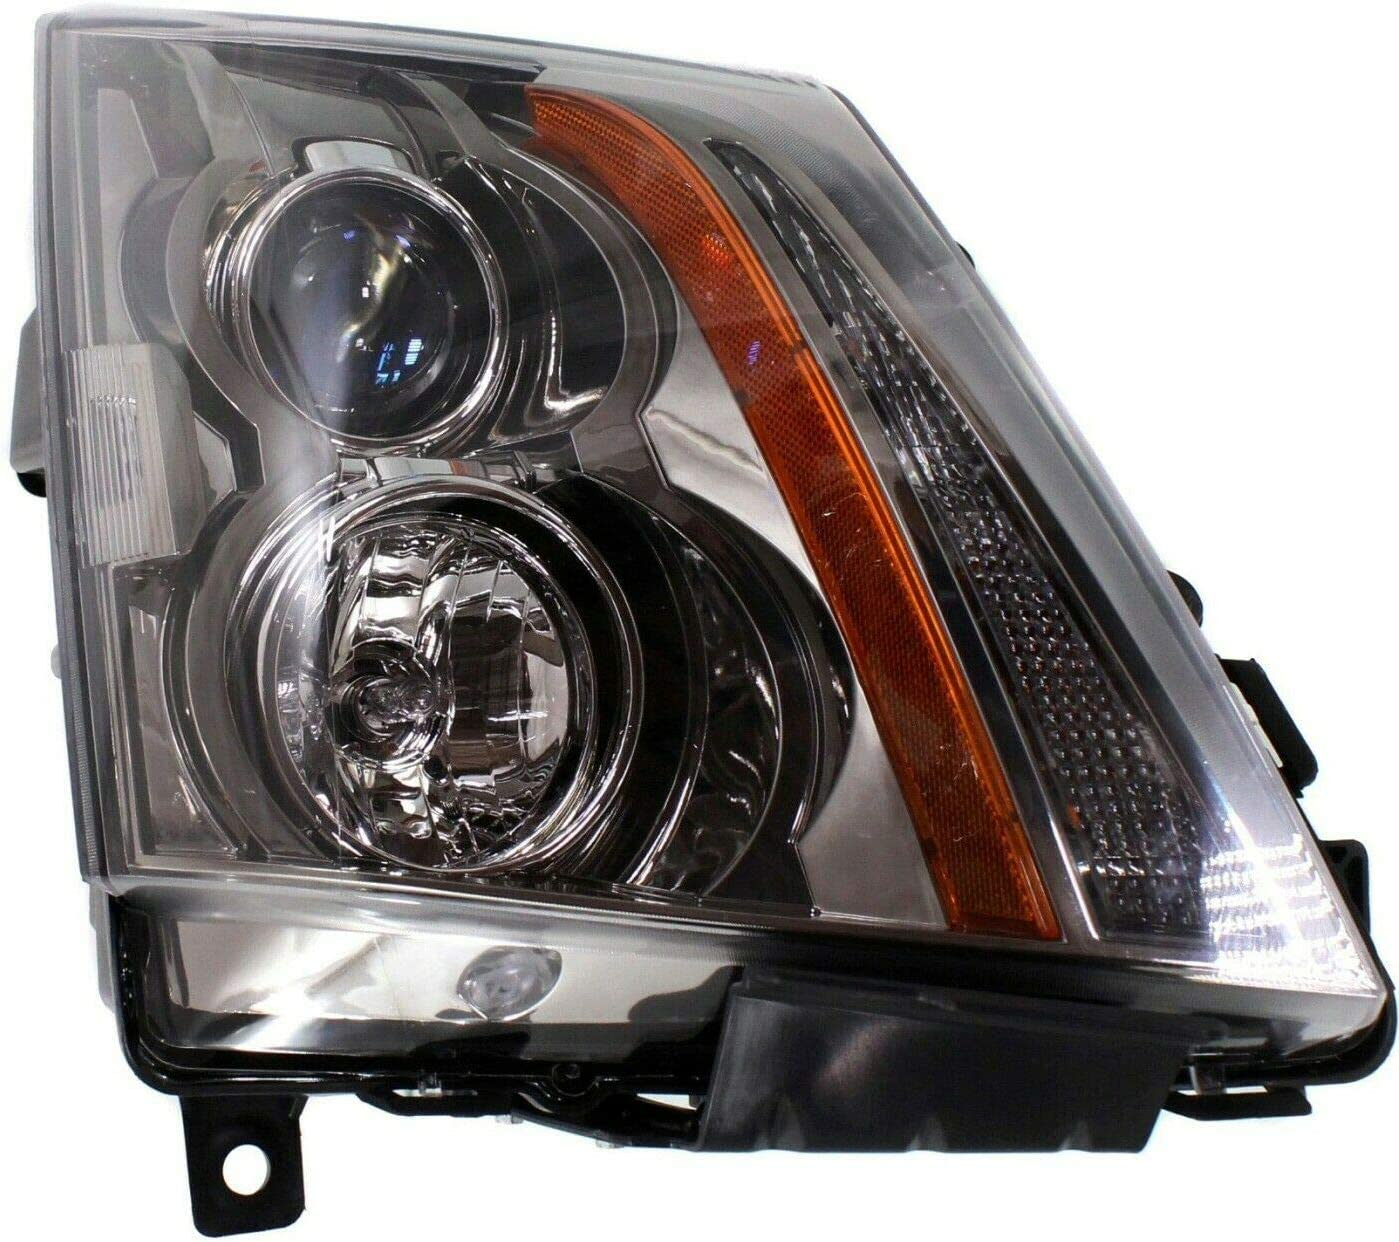 NEW Headlight All items free shipping Compatible with CTS 2011-2015 Sedan Max 87% OFF 2008-2015